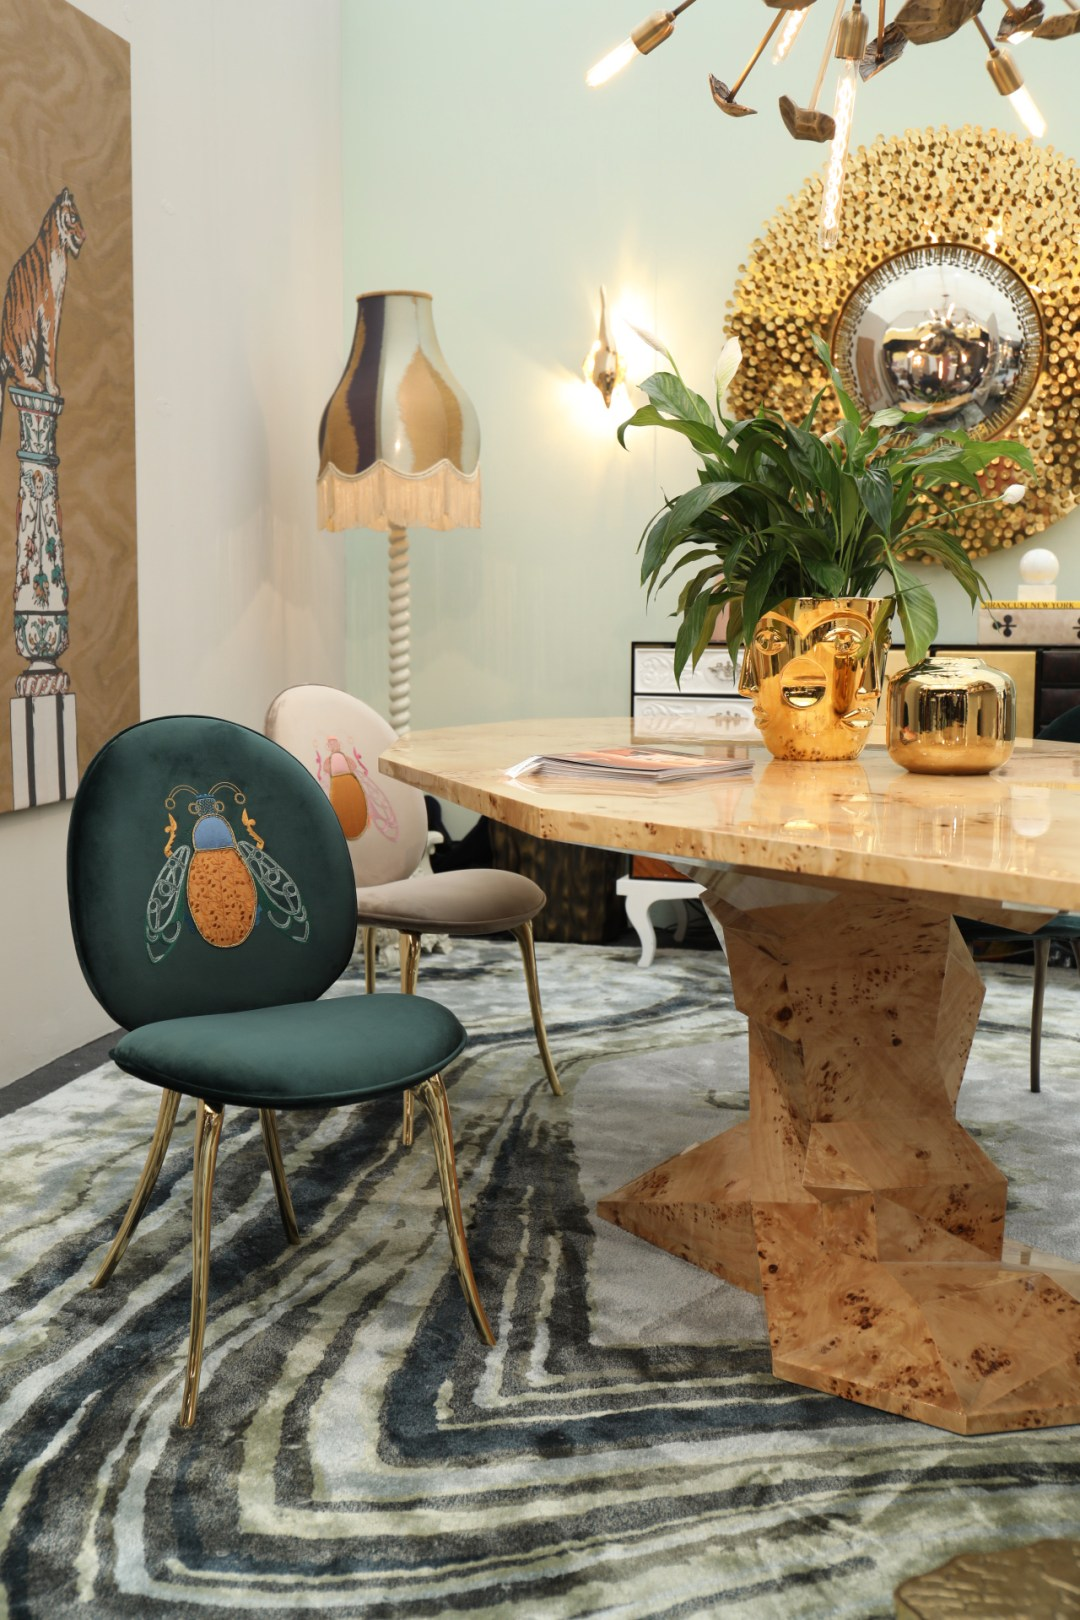 Boca-do-Lobo-Decorex-2018-Boca-do-Lobo-and-Rug-Society-Stand-2513054 Inspired By Nature: How to Add Green to Your Home